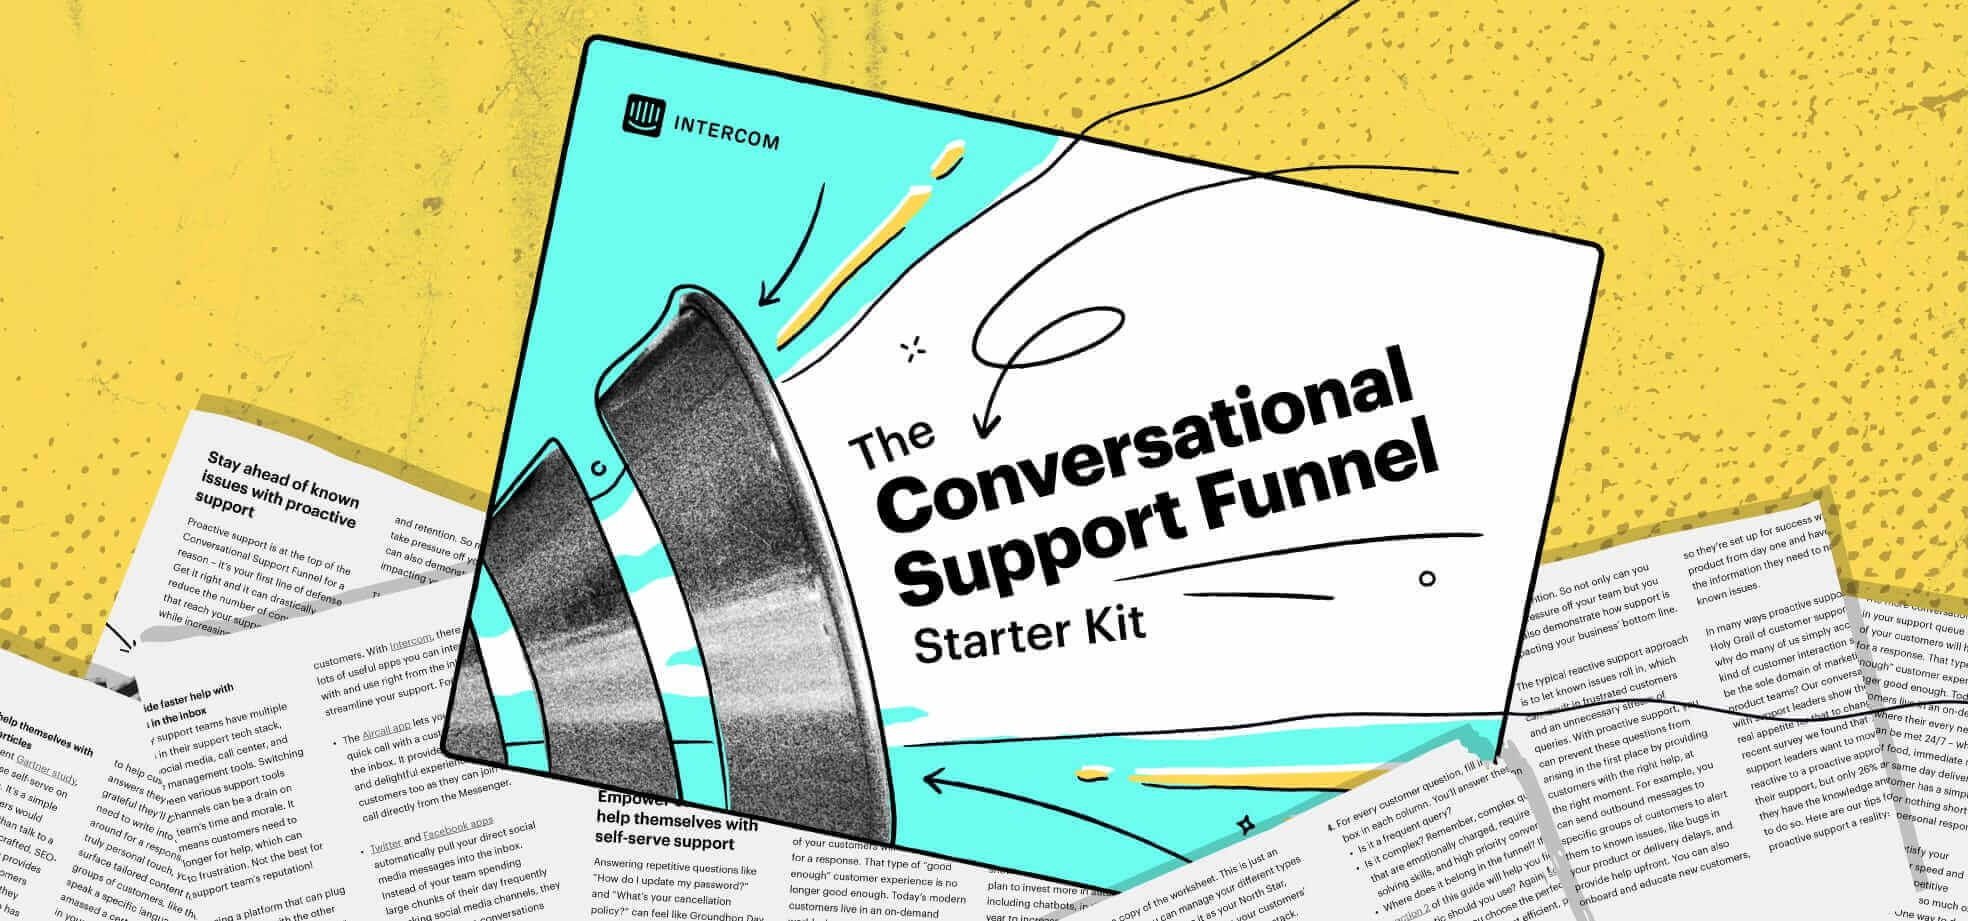 Announcing the Conversational Support Funnel Starter Kit